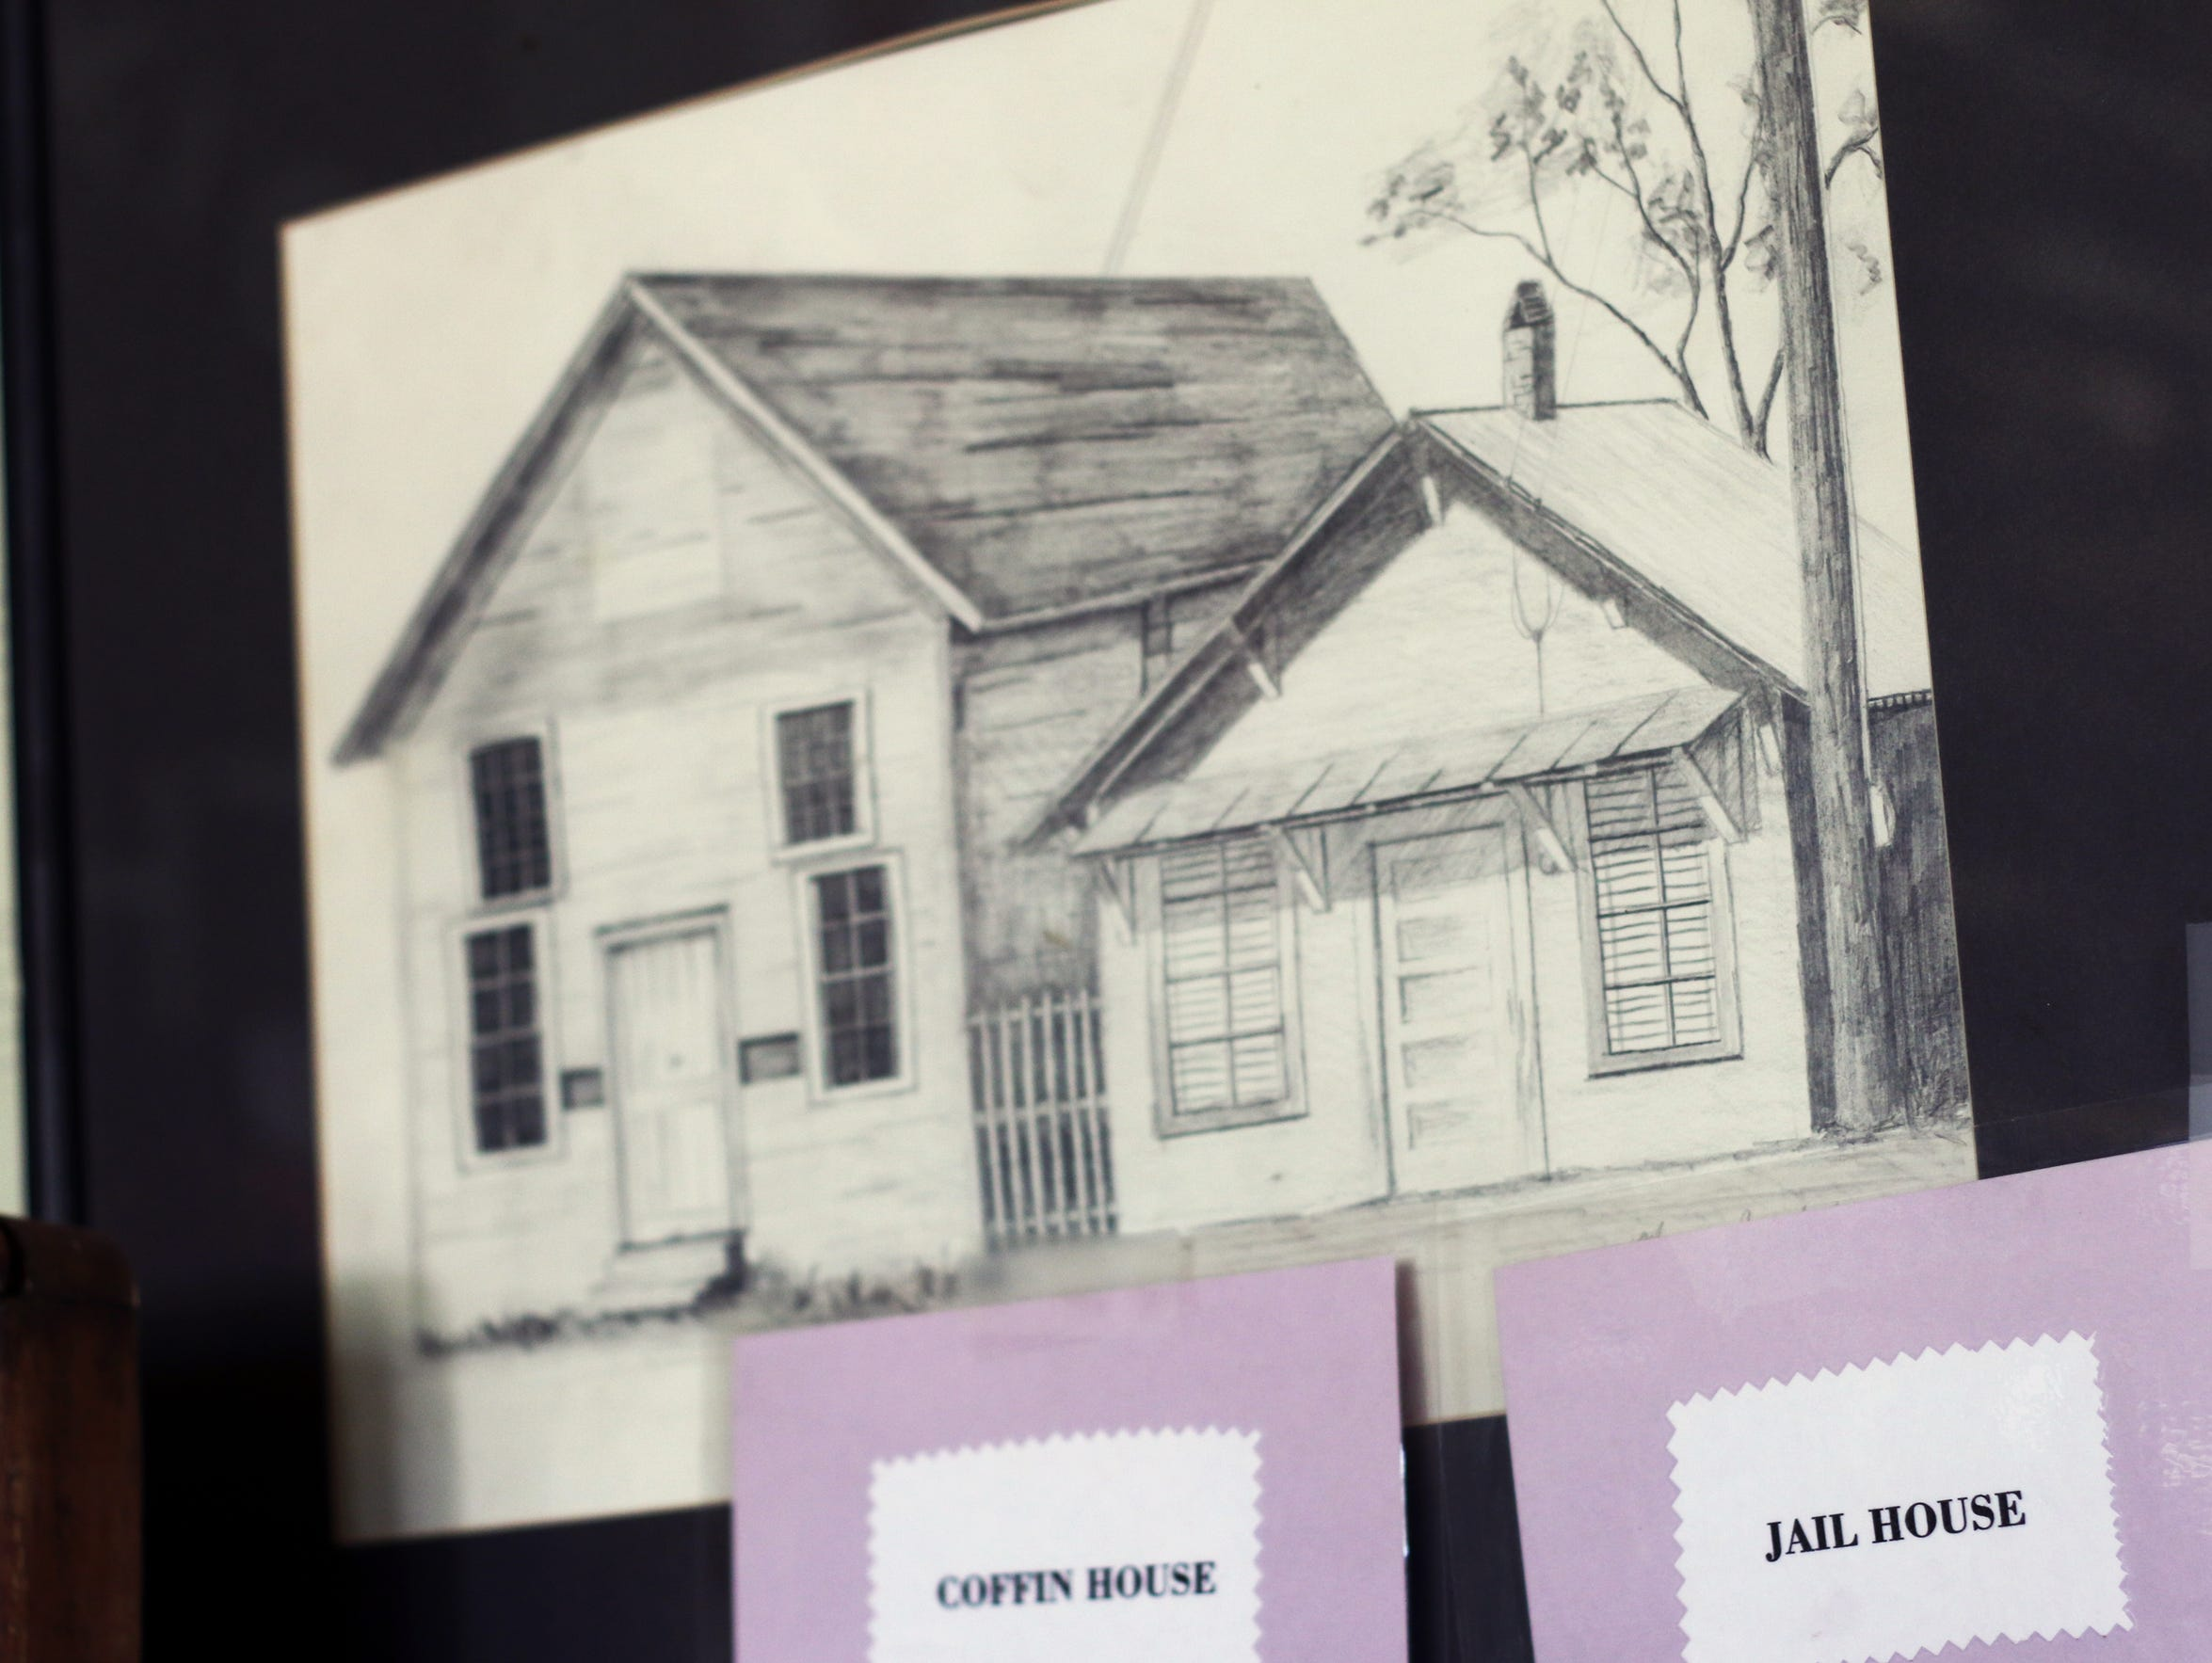 A sketch of the jail and coffin house of Colbert is